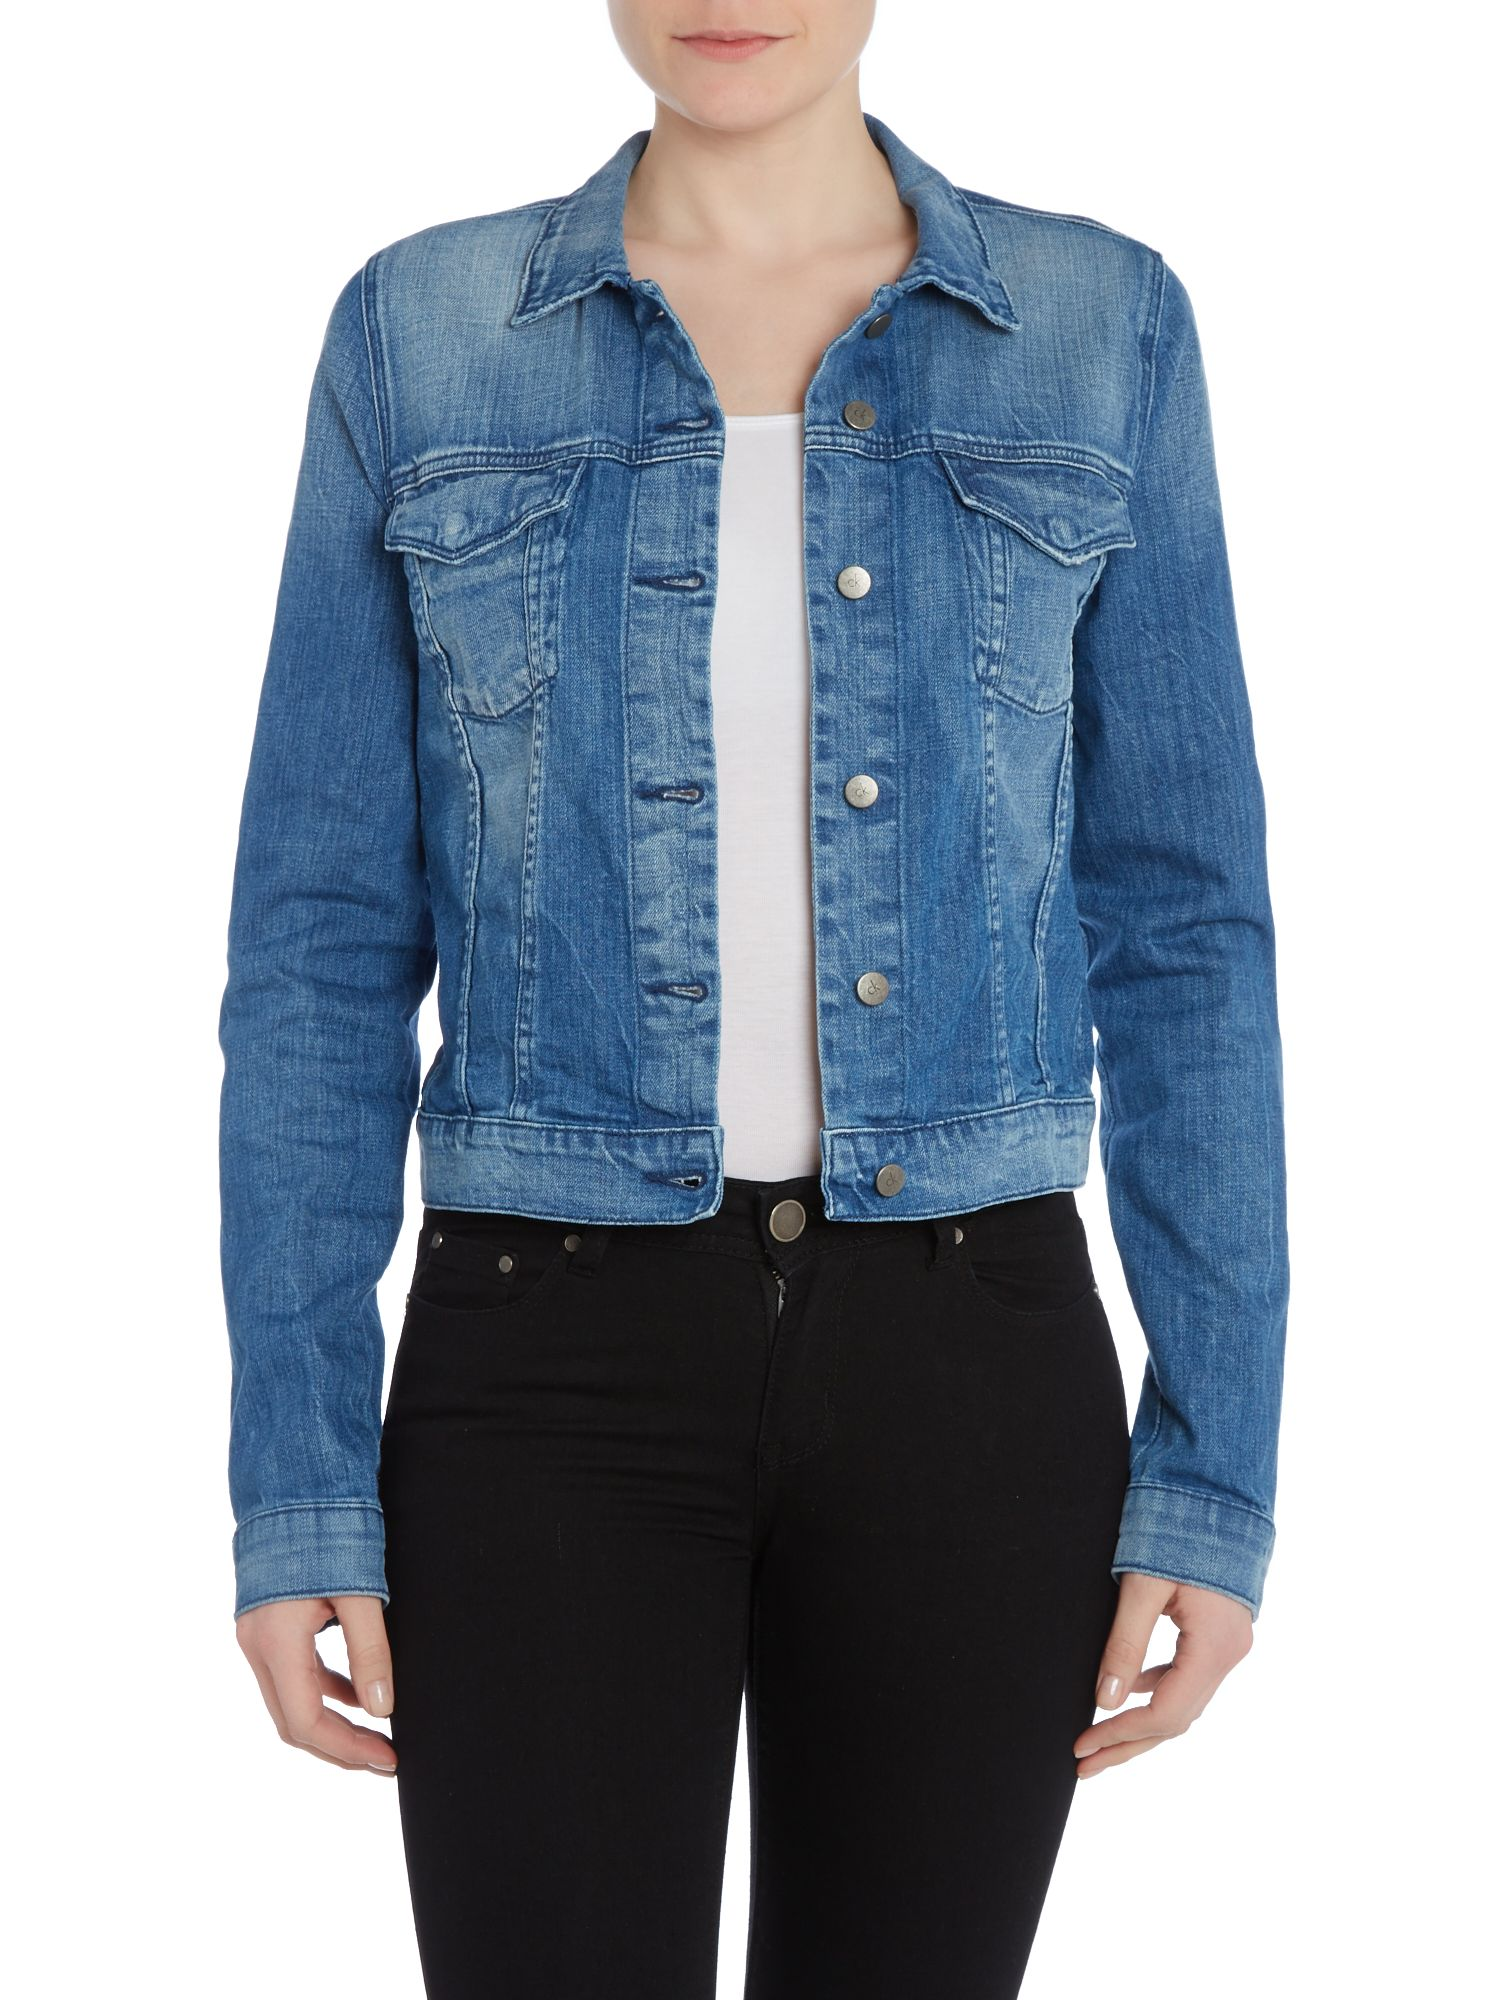 Adette denim jacket